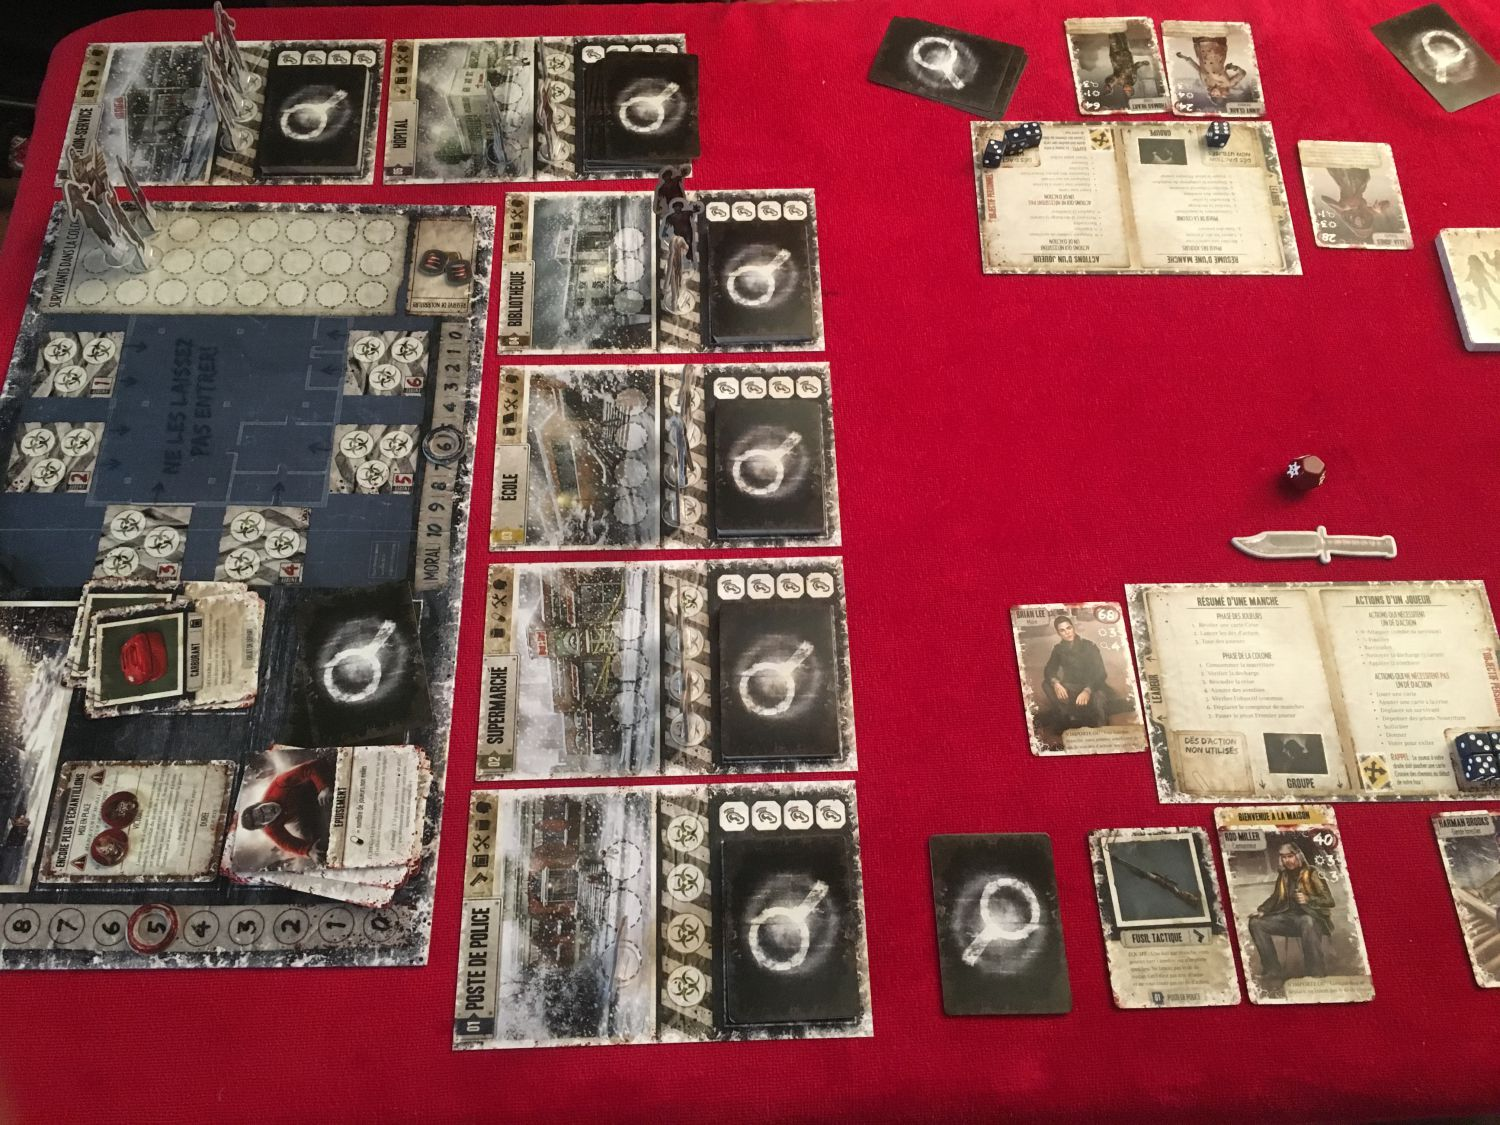 Dead of Winter prend pas mal de place sur la table.